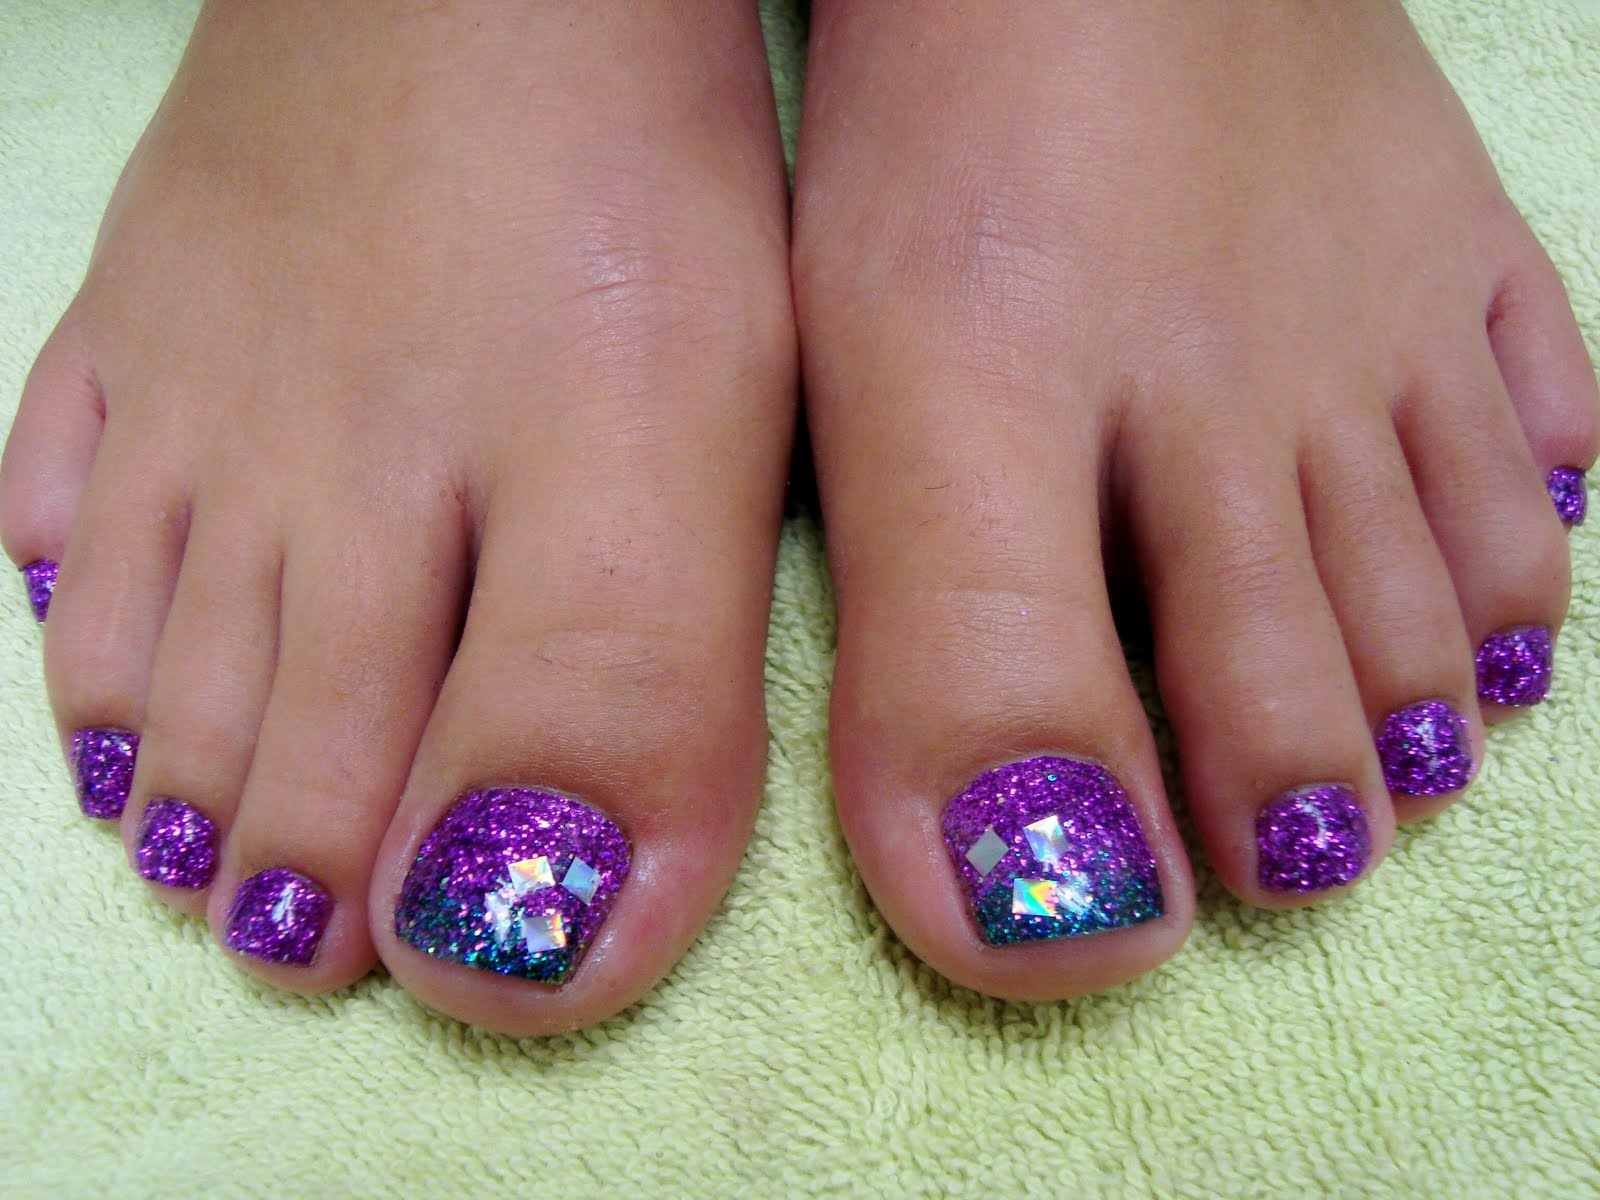 Purple toe nail design pretty purple toes with zebra design toe designs for toe nails view images like website prinsesfo Choice Image